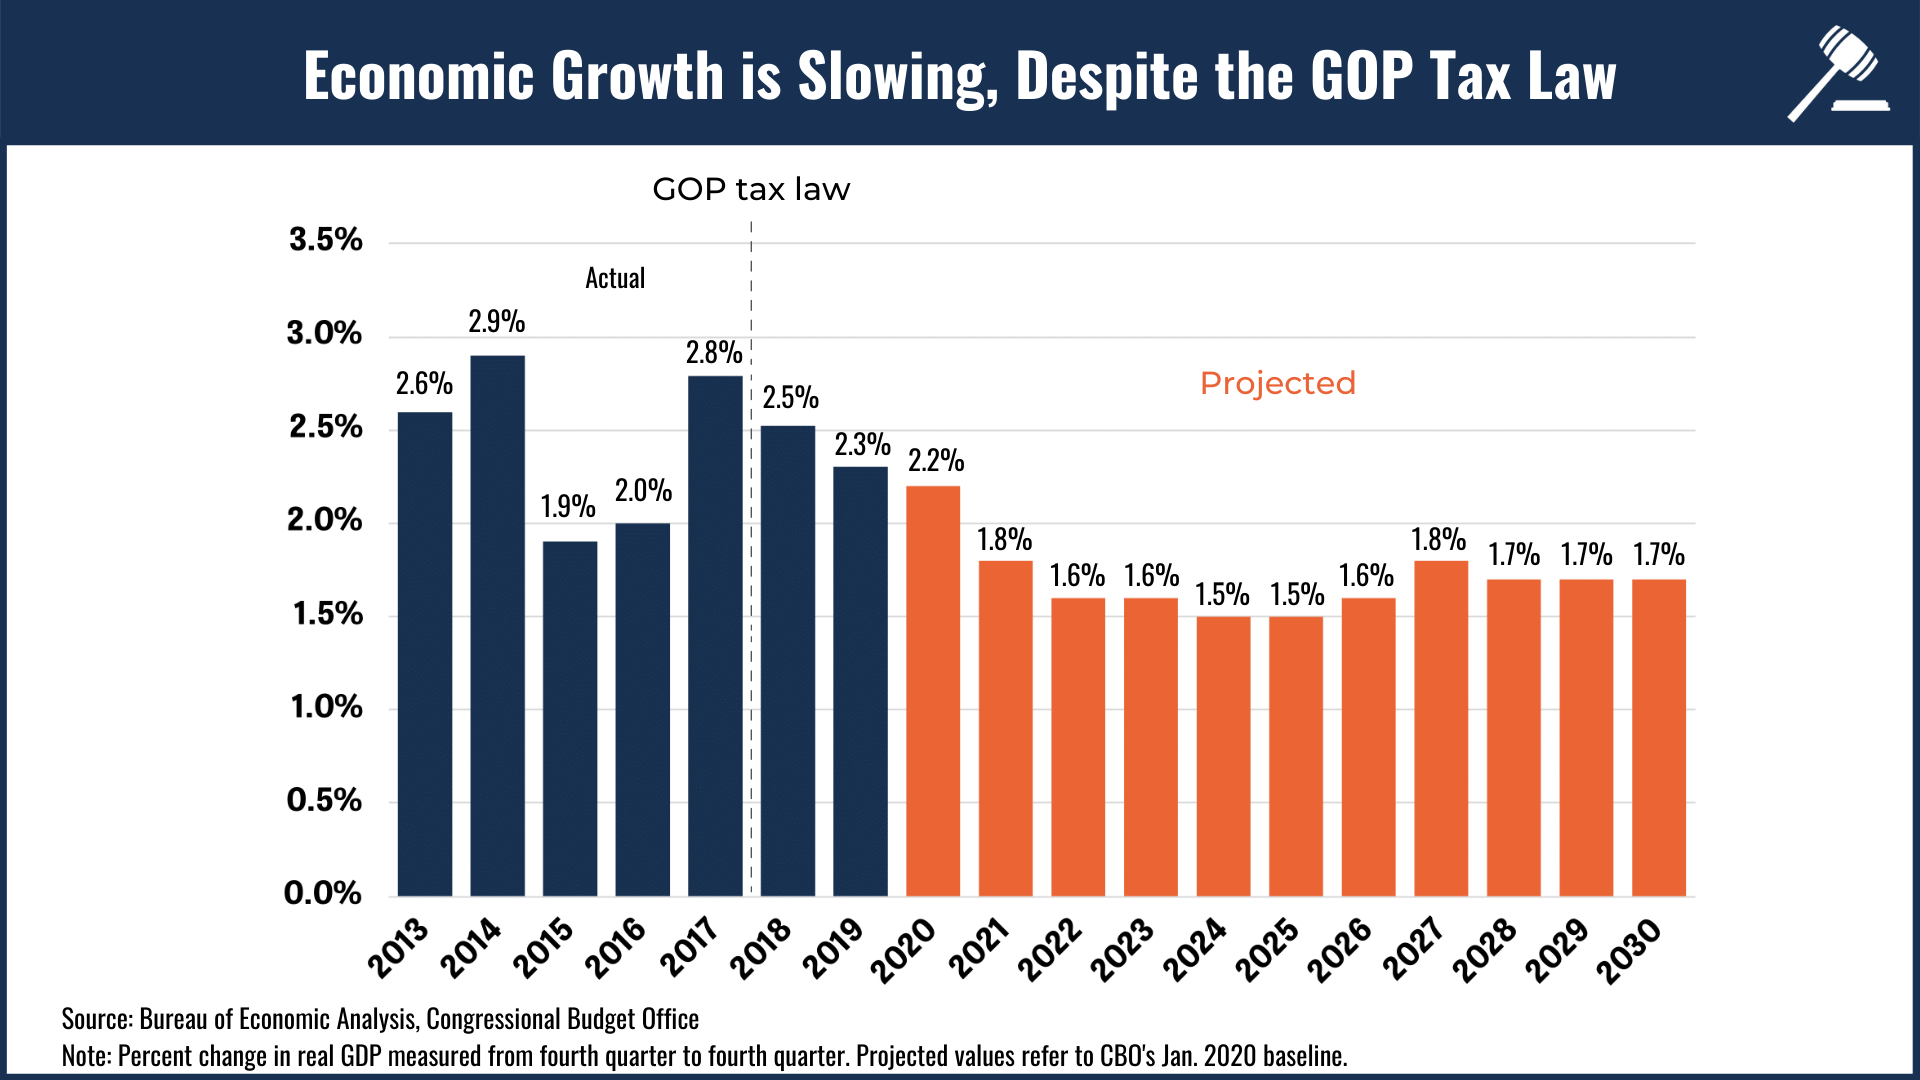 Bar chart showing how economic growth is slowing despite the GOP Tax Law